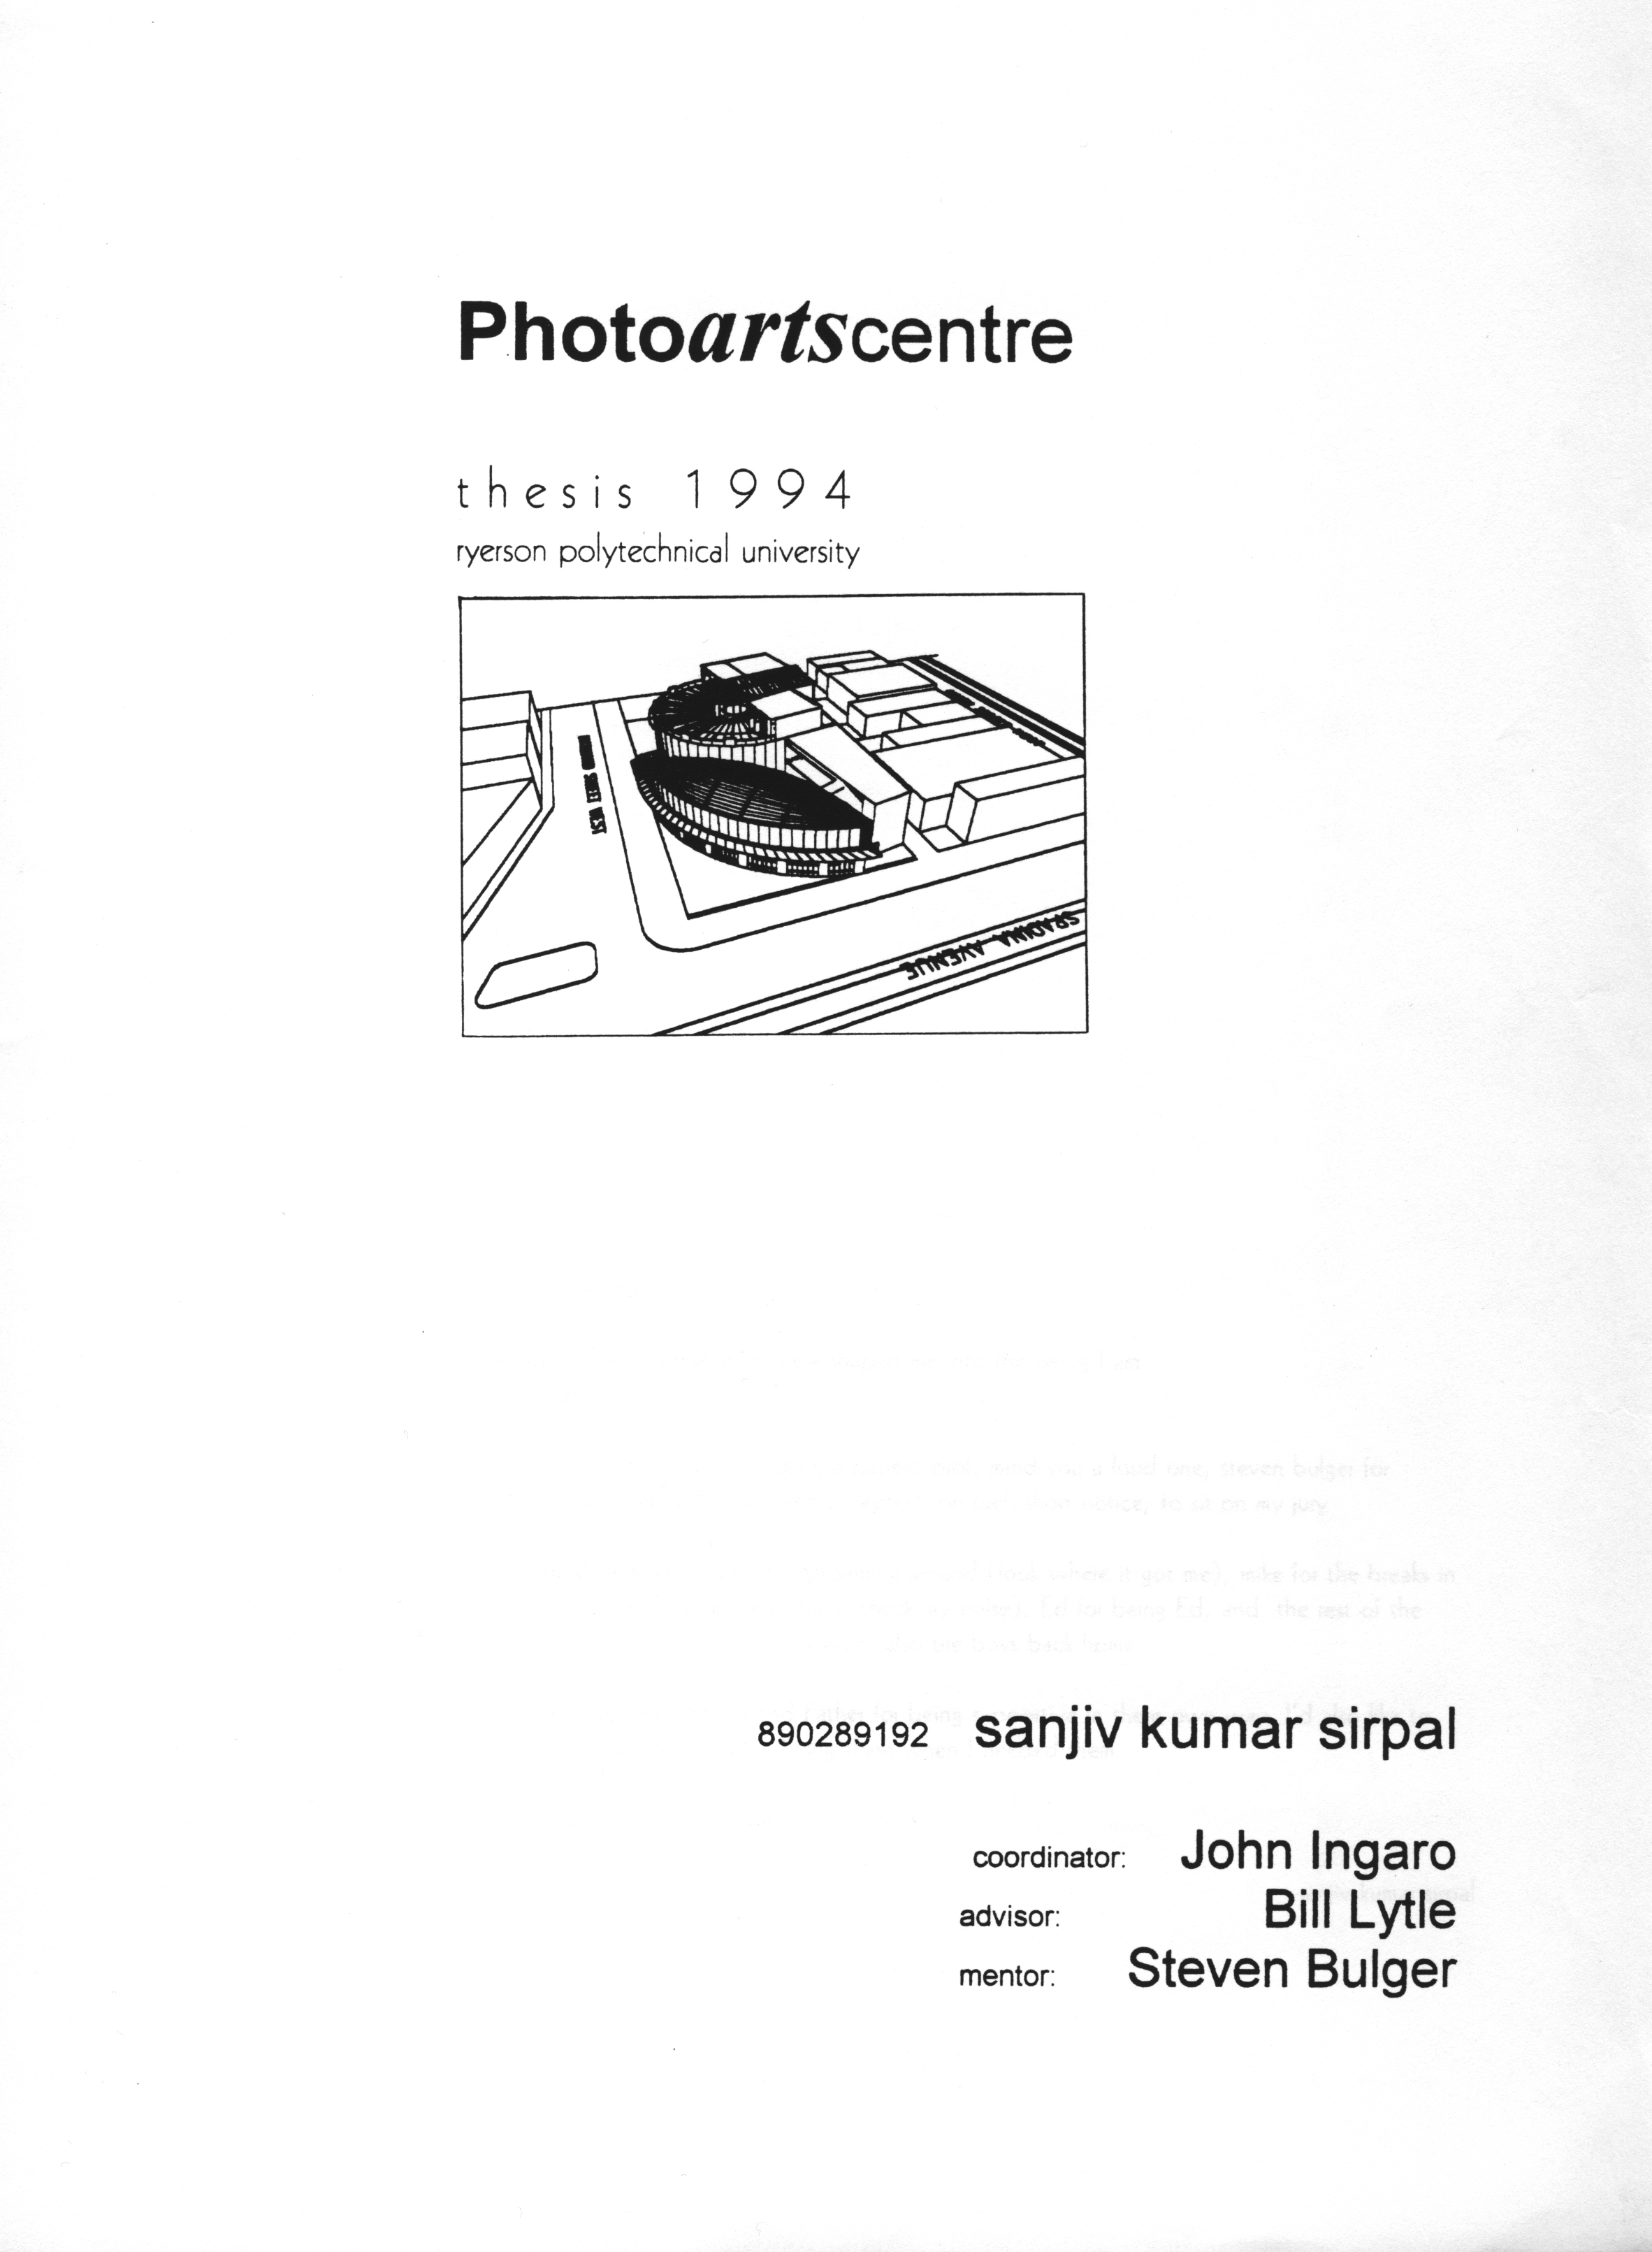 PhotographicArts Center Thesis Program - by Sanjiv Sirpal